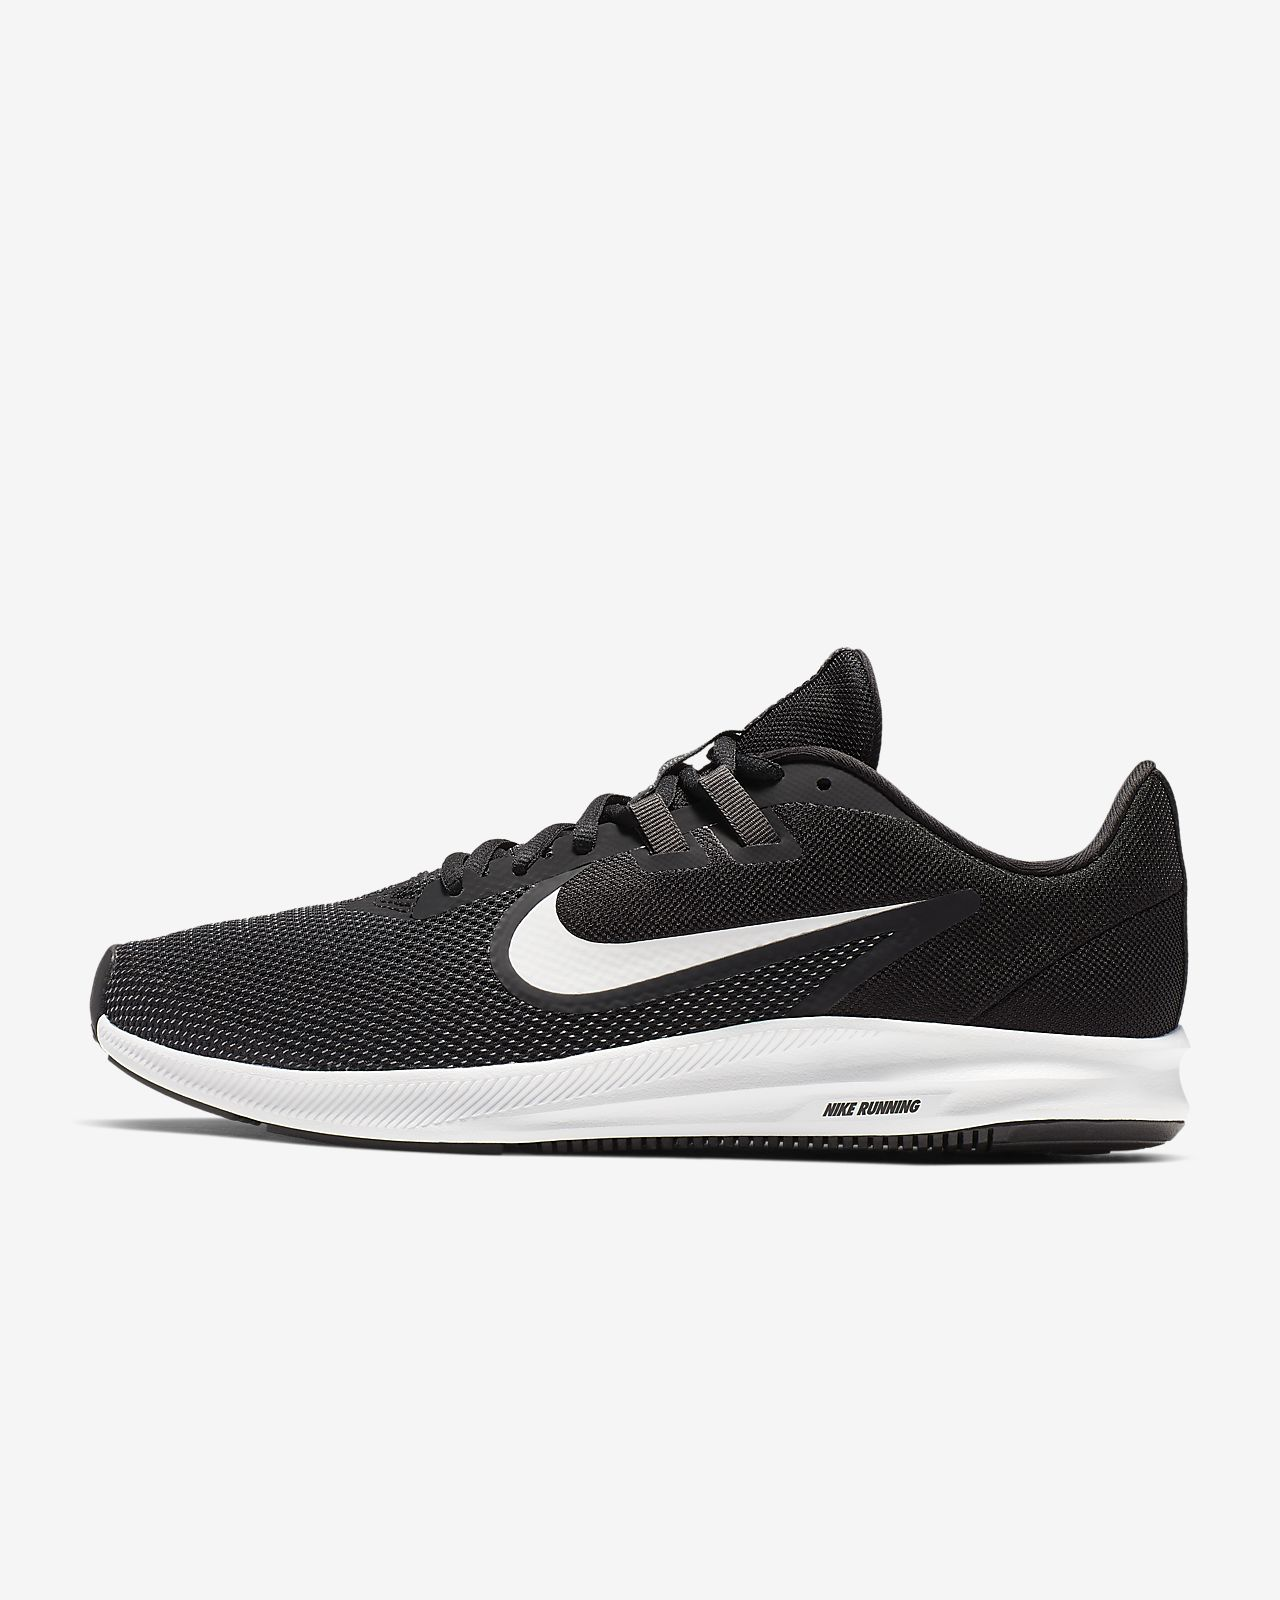 Running Homme Nike Chaussure Pour De 9 Downshifter KuF5TlJ1c3